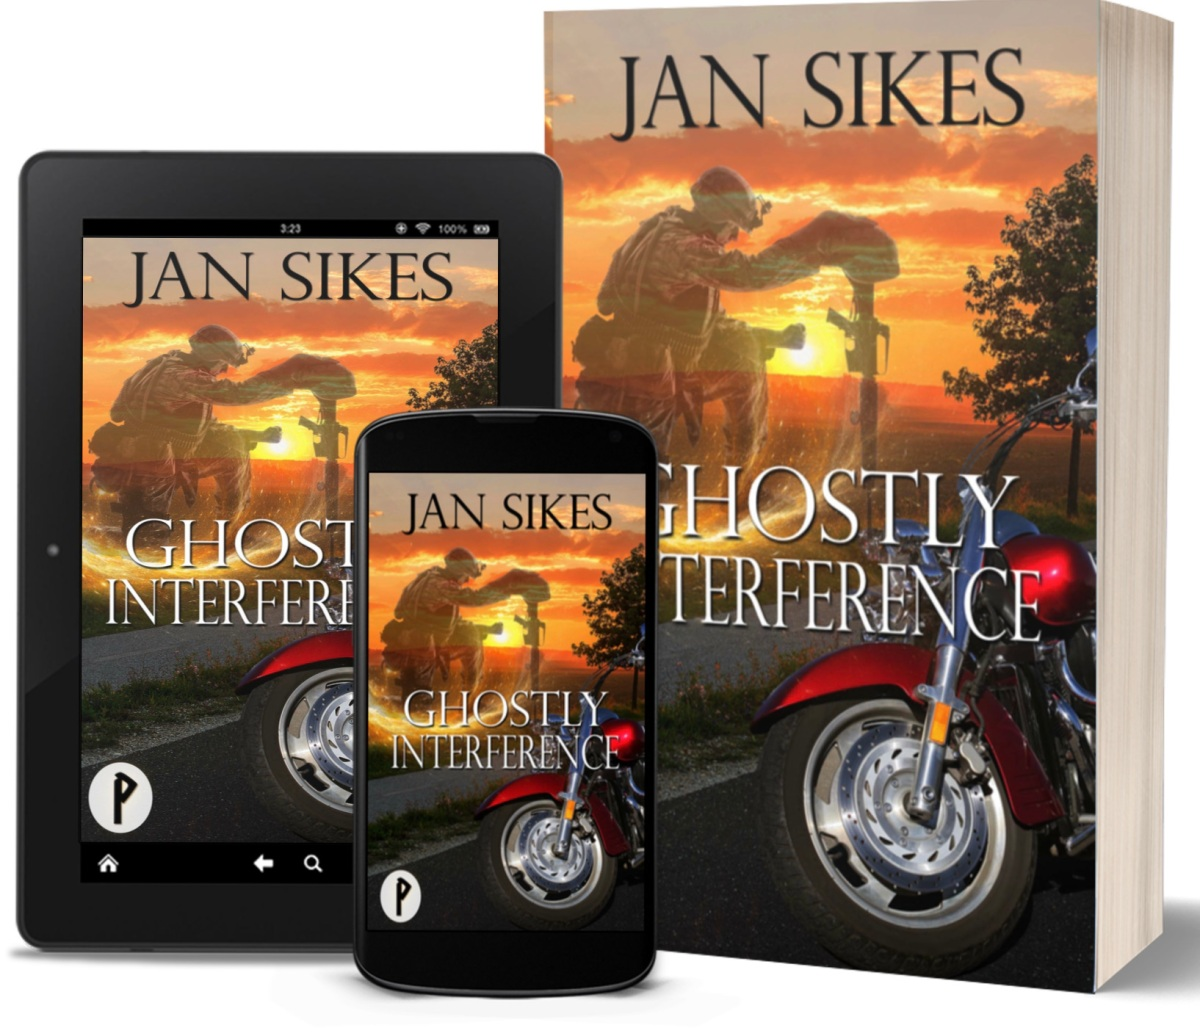 Meet Jan Sikes, the author of Ghostly Interference, Published by The Wild Rose Press